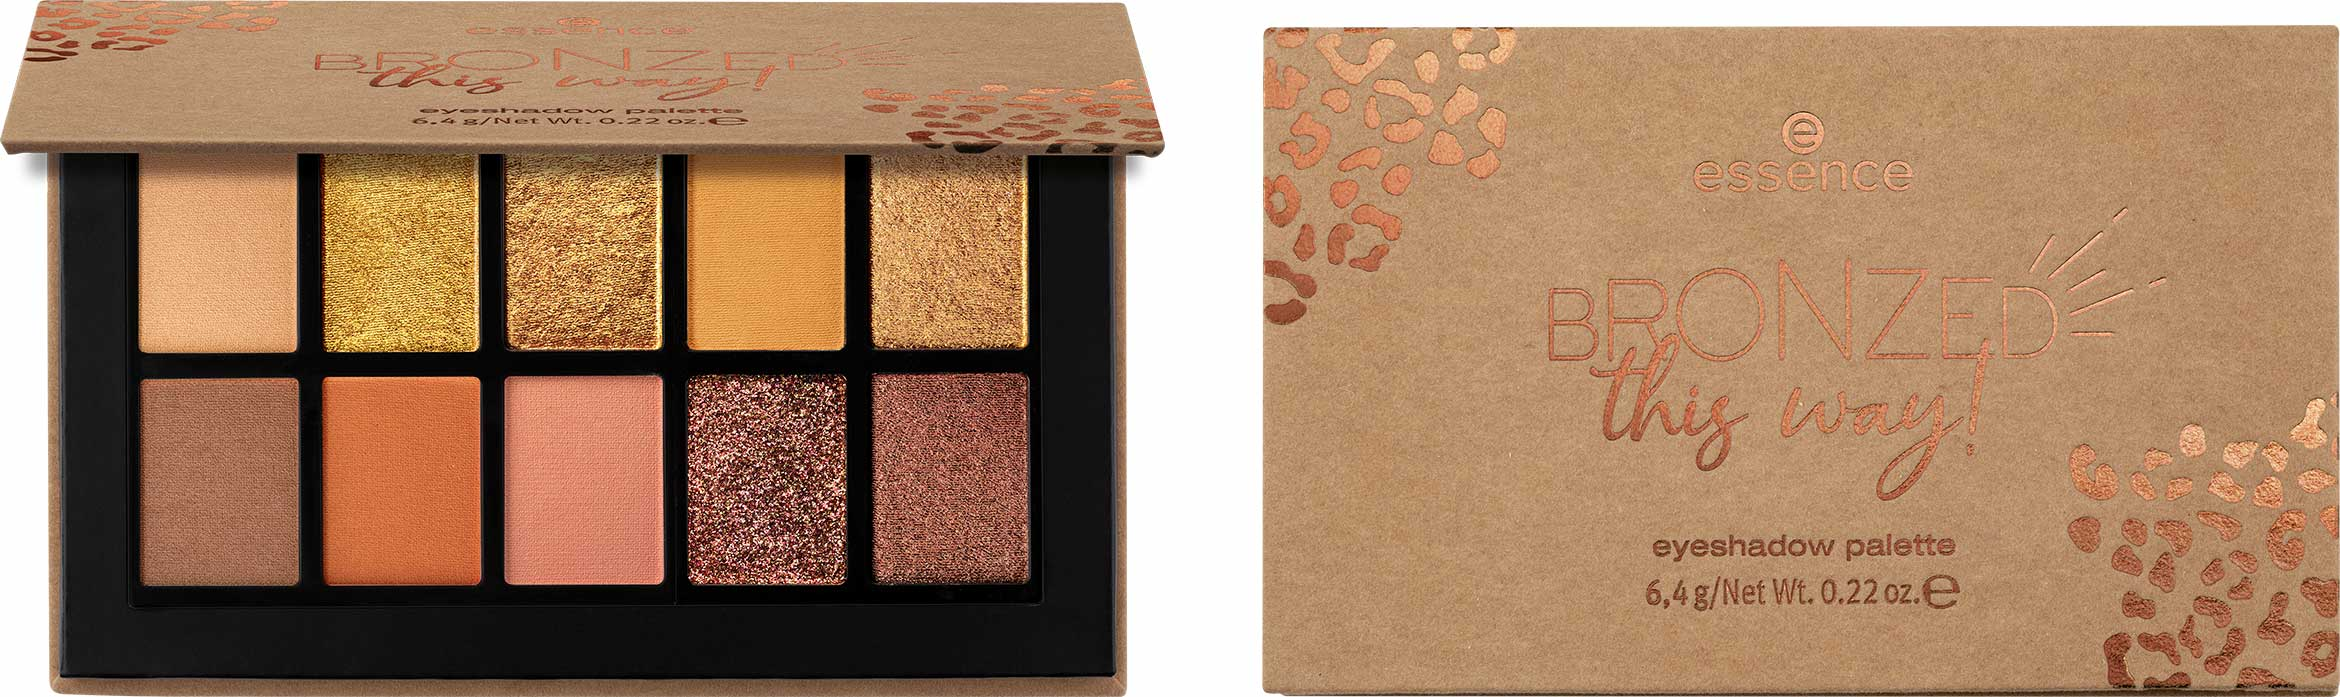 essence bronzed this way eyeshadow palette